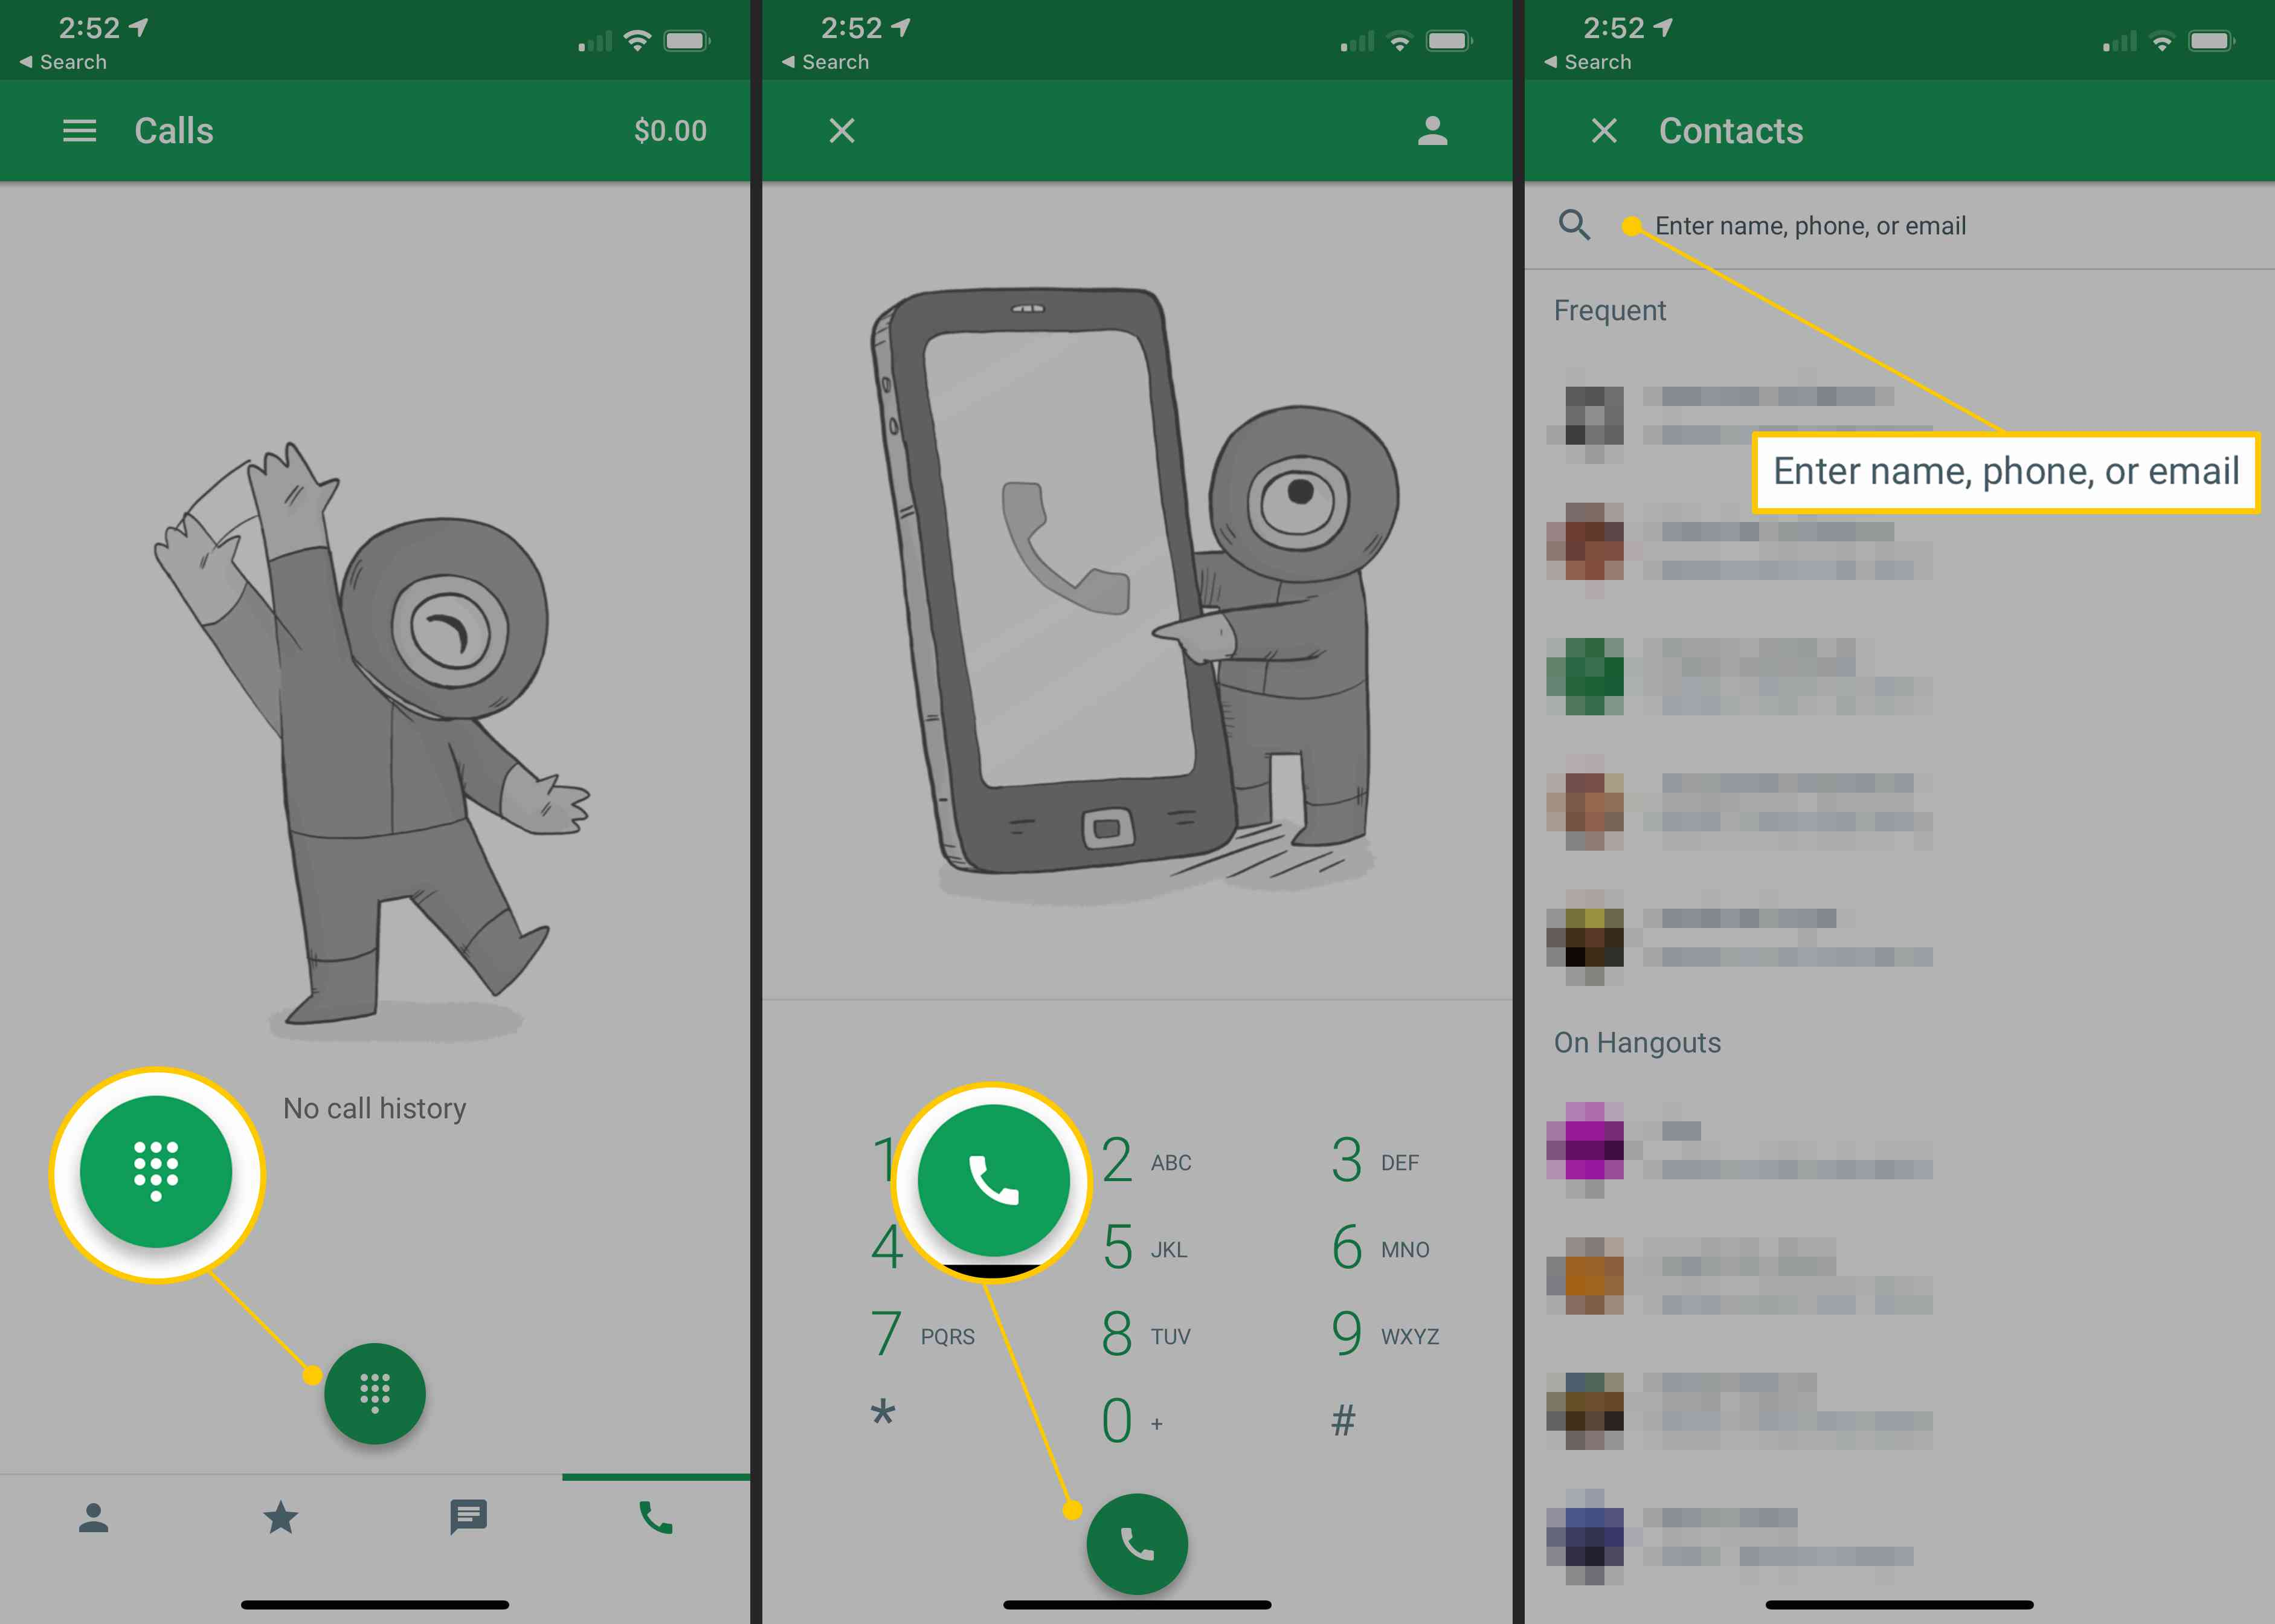 Dialer, Phone call icon, Contacts search in mobile Hangouts app on iOS